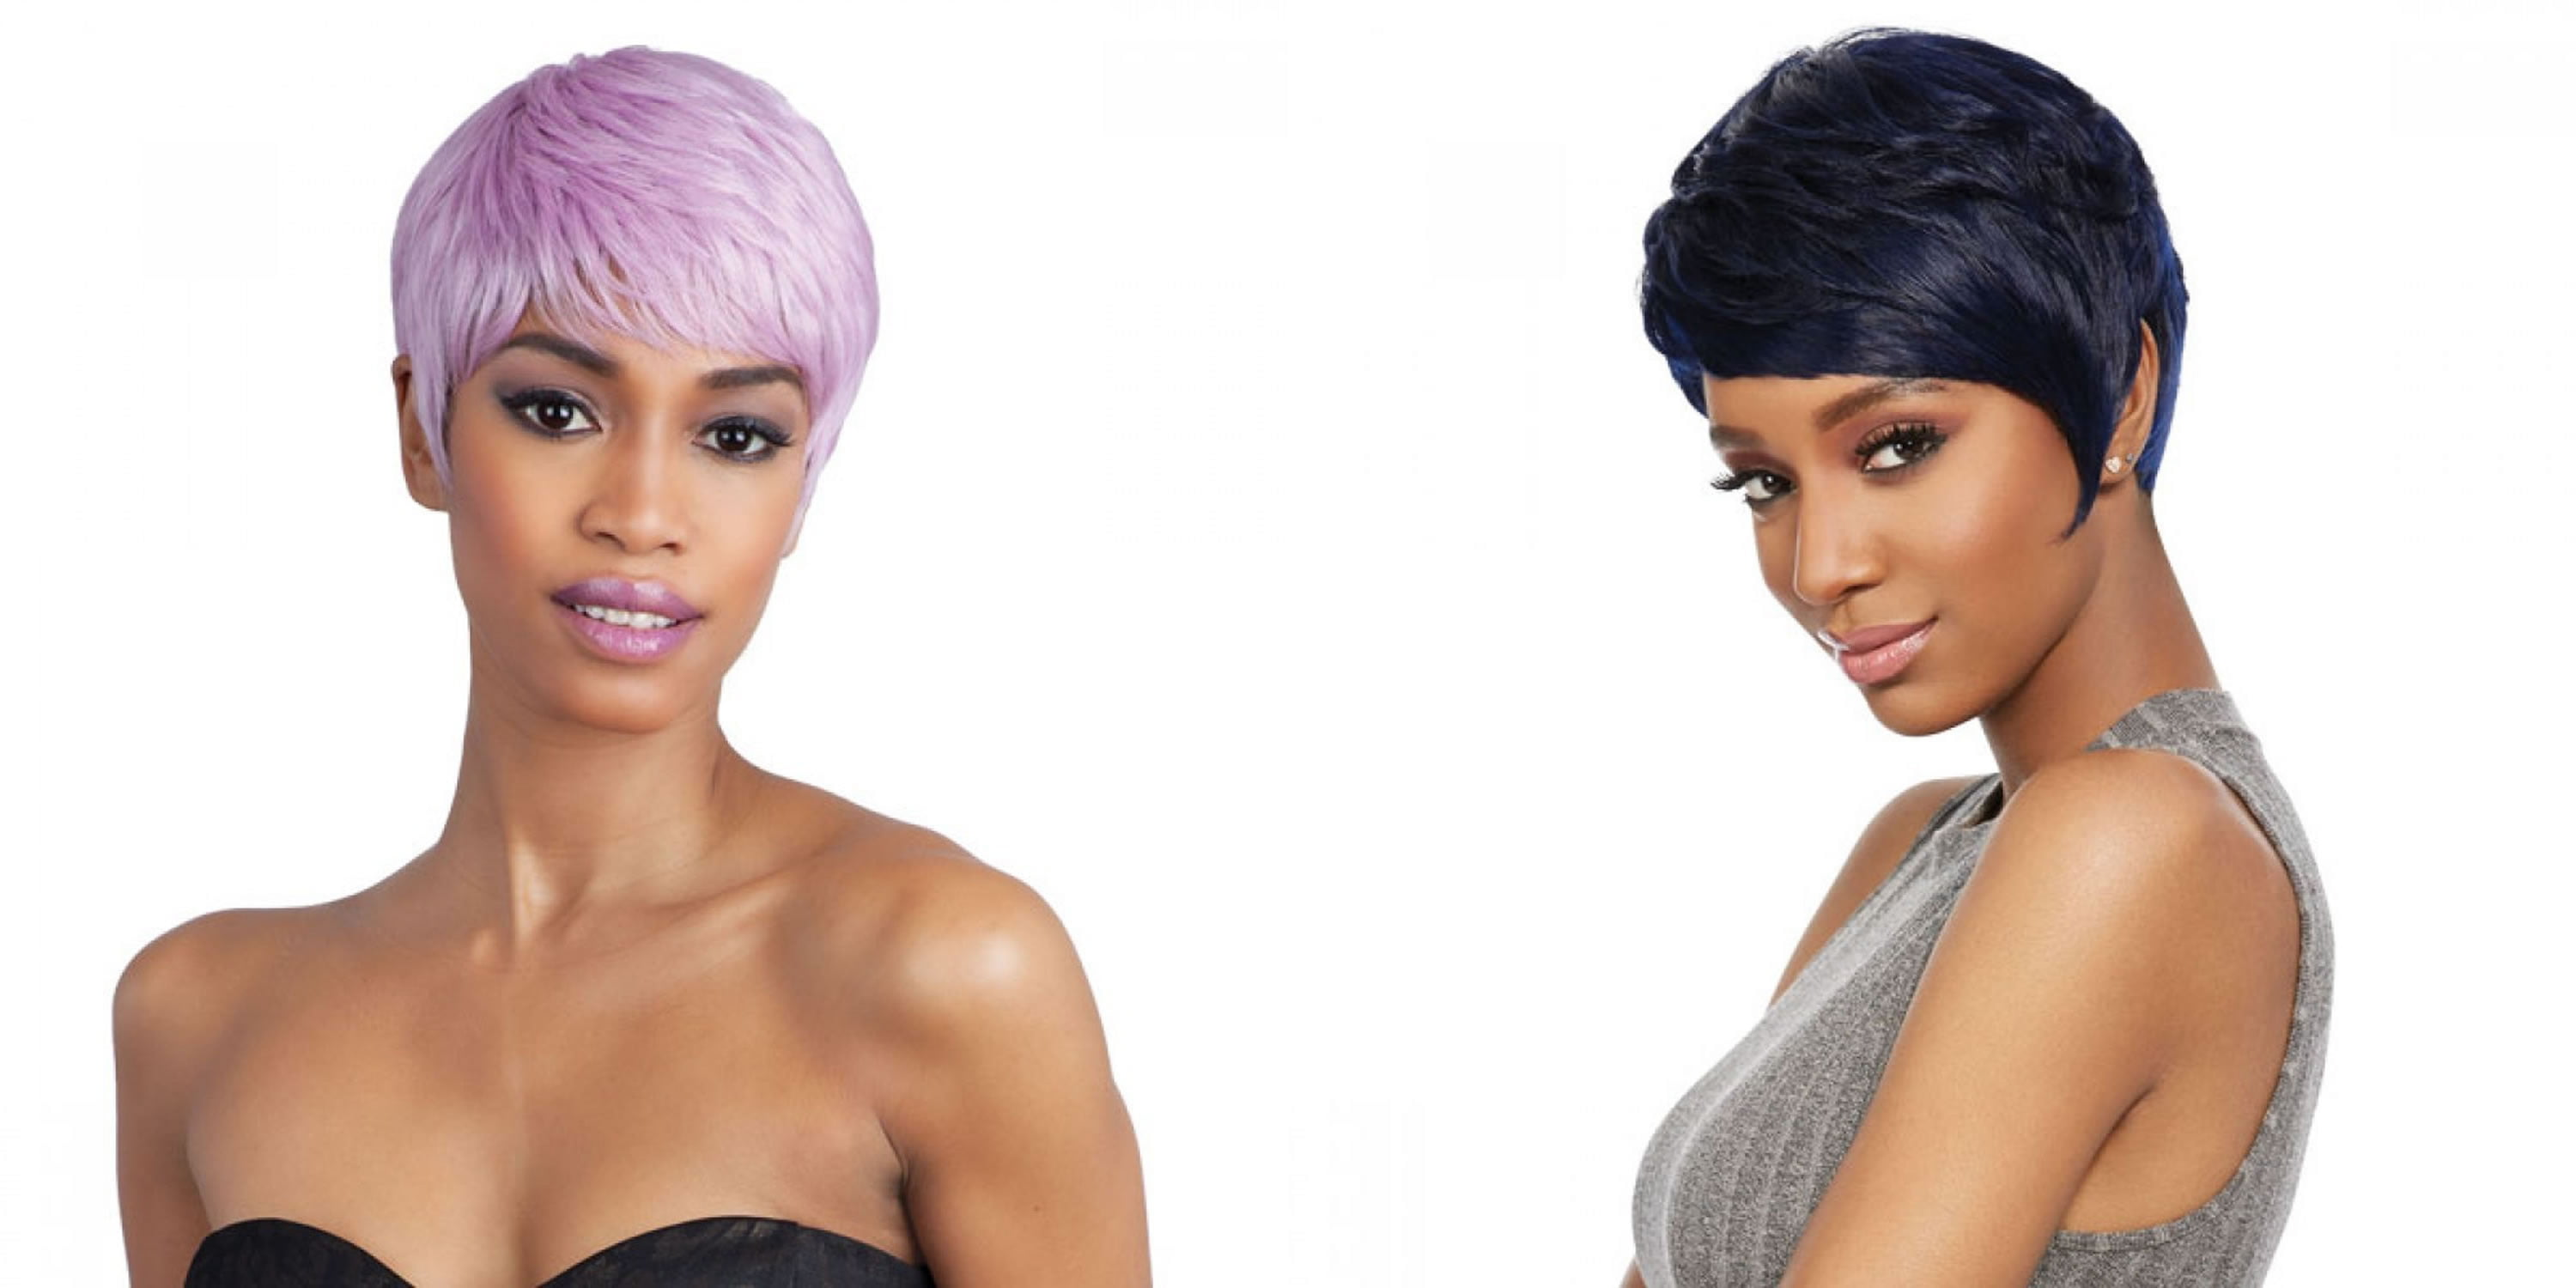 60 Amazing Pixie Hairstyles for Black Women in 2020 - Page 2 - HAIRSTYLES